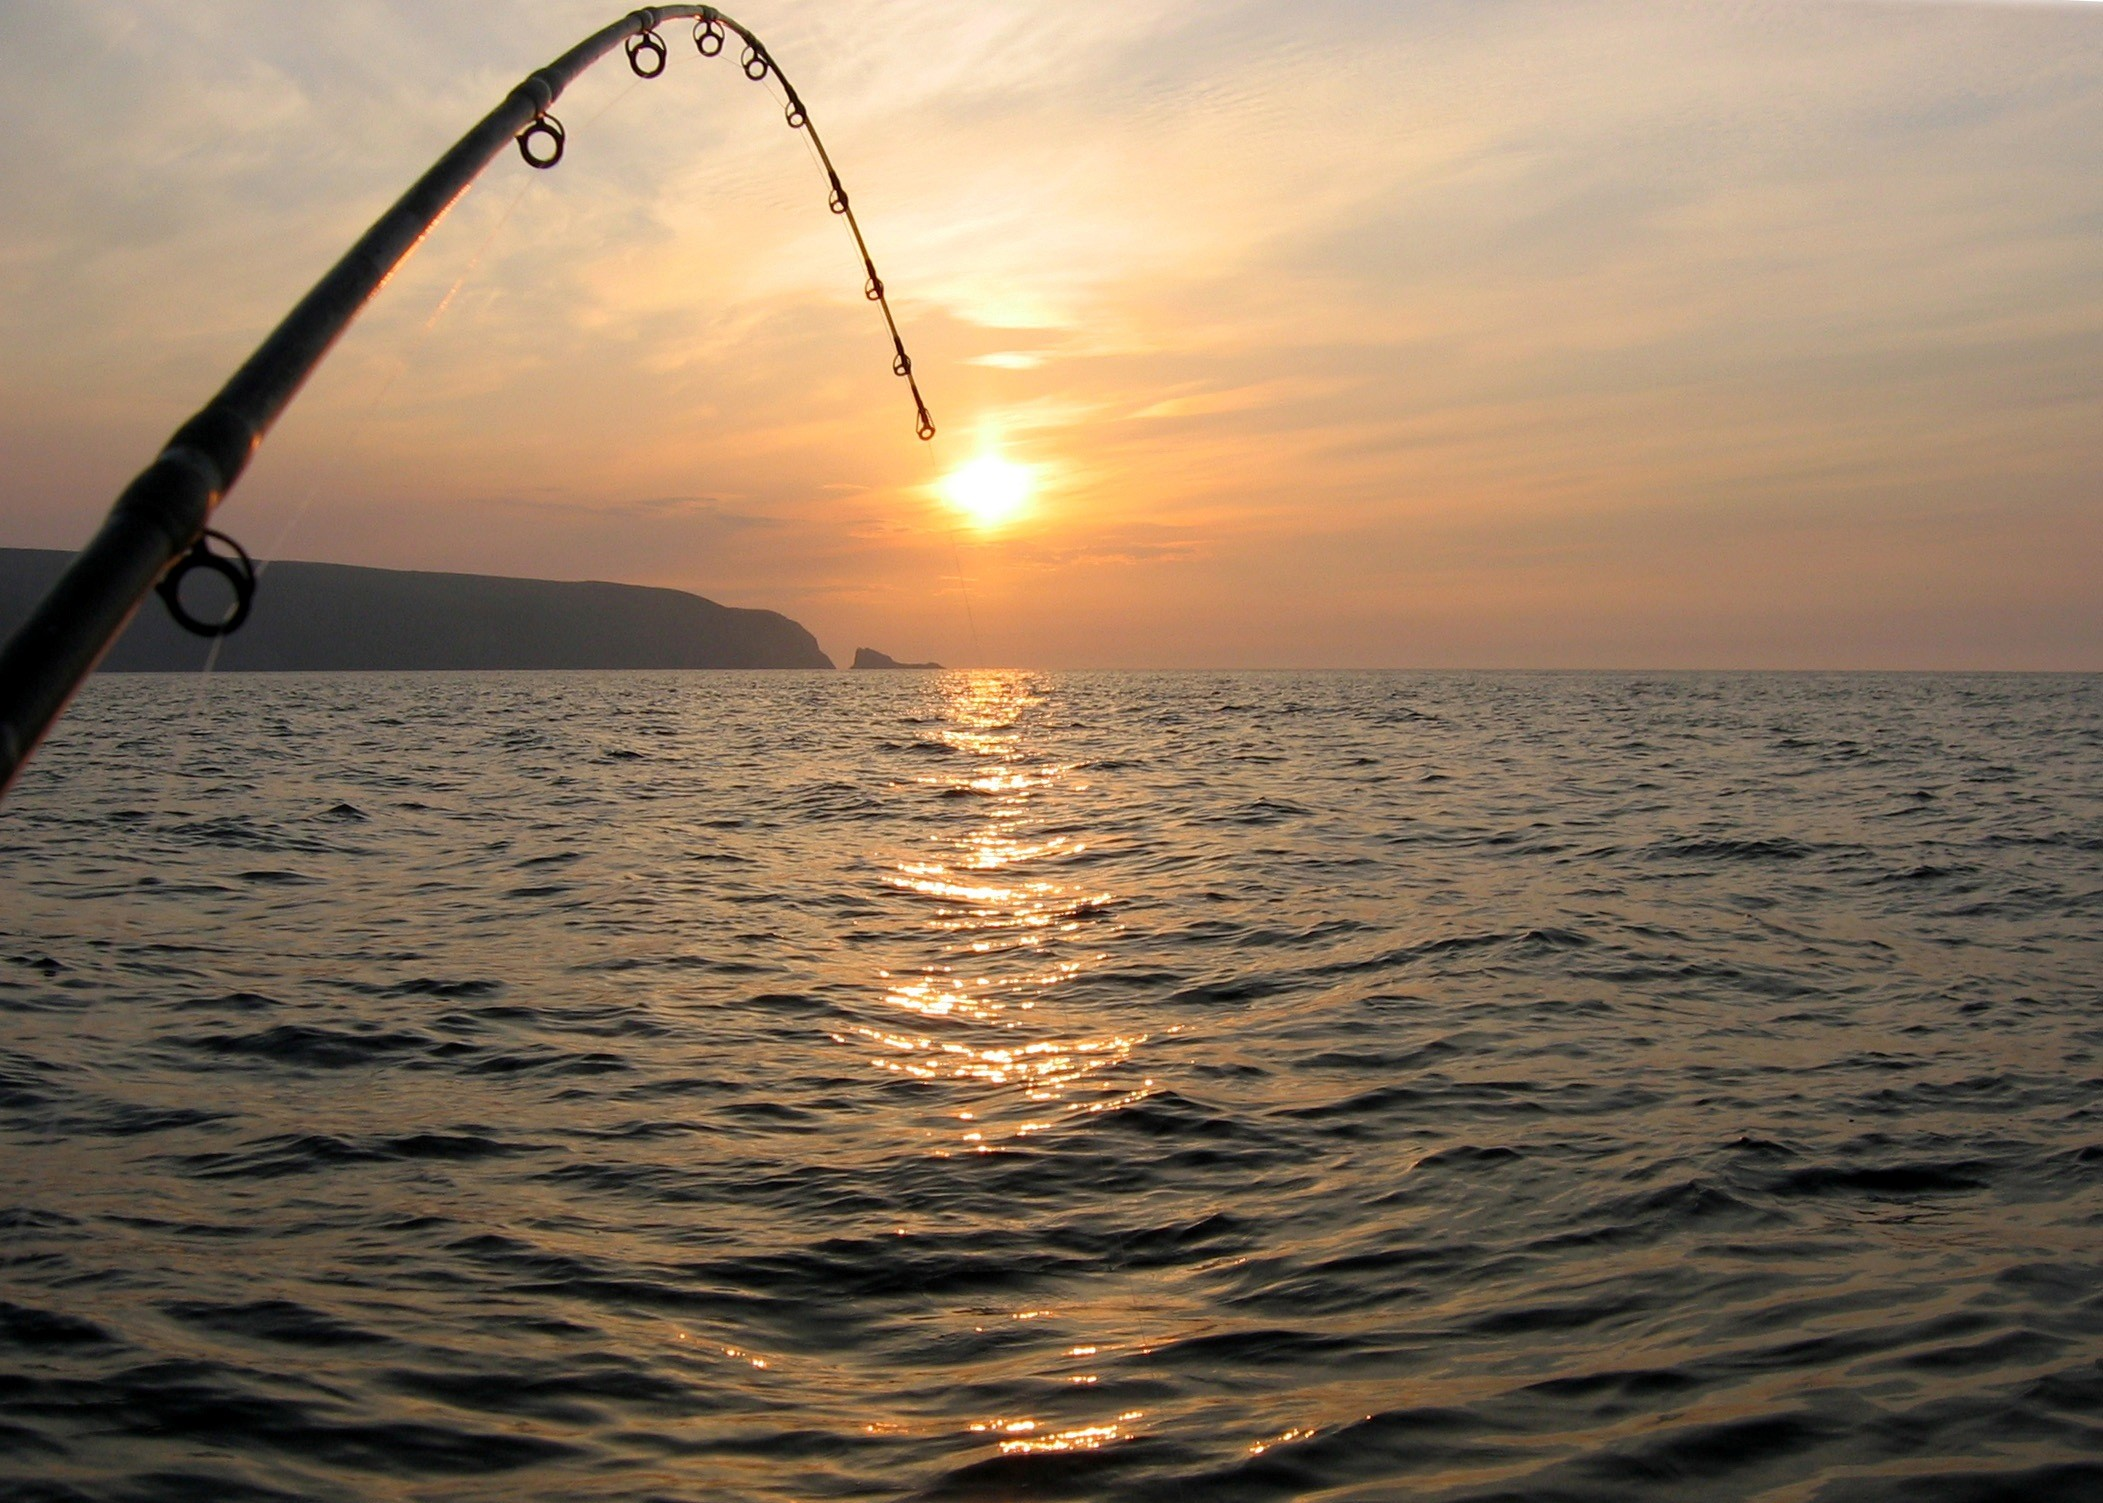 55 Saltwater Fishing Android Iphone Desktop Hd Backgrounds Wallpapers 1080p 4k 2103x1503 2020